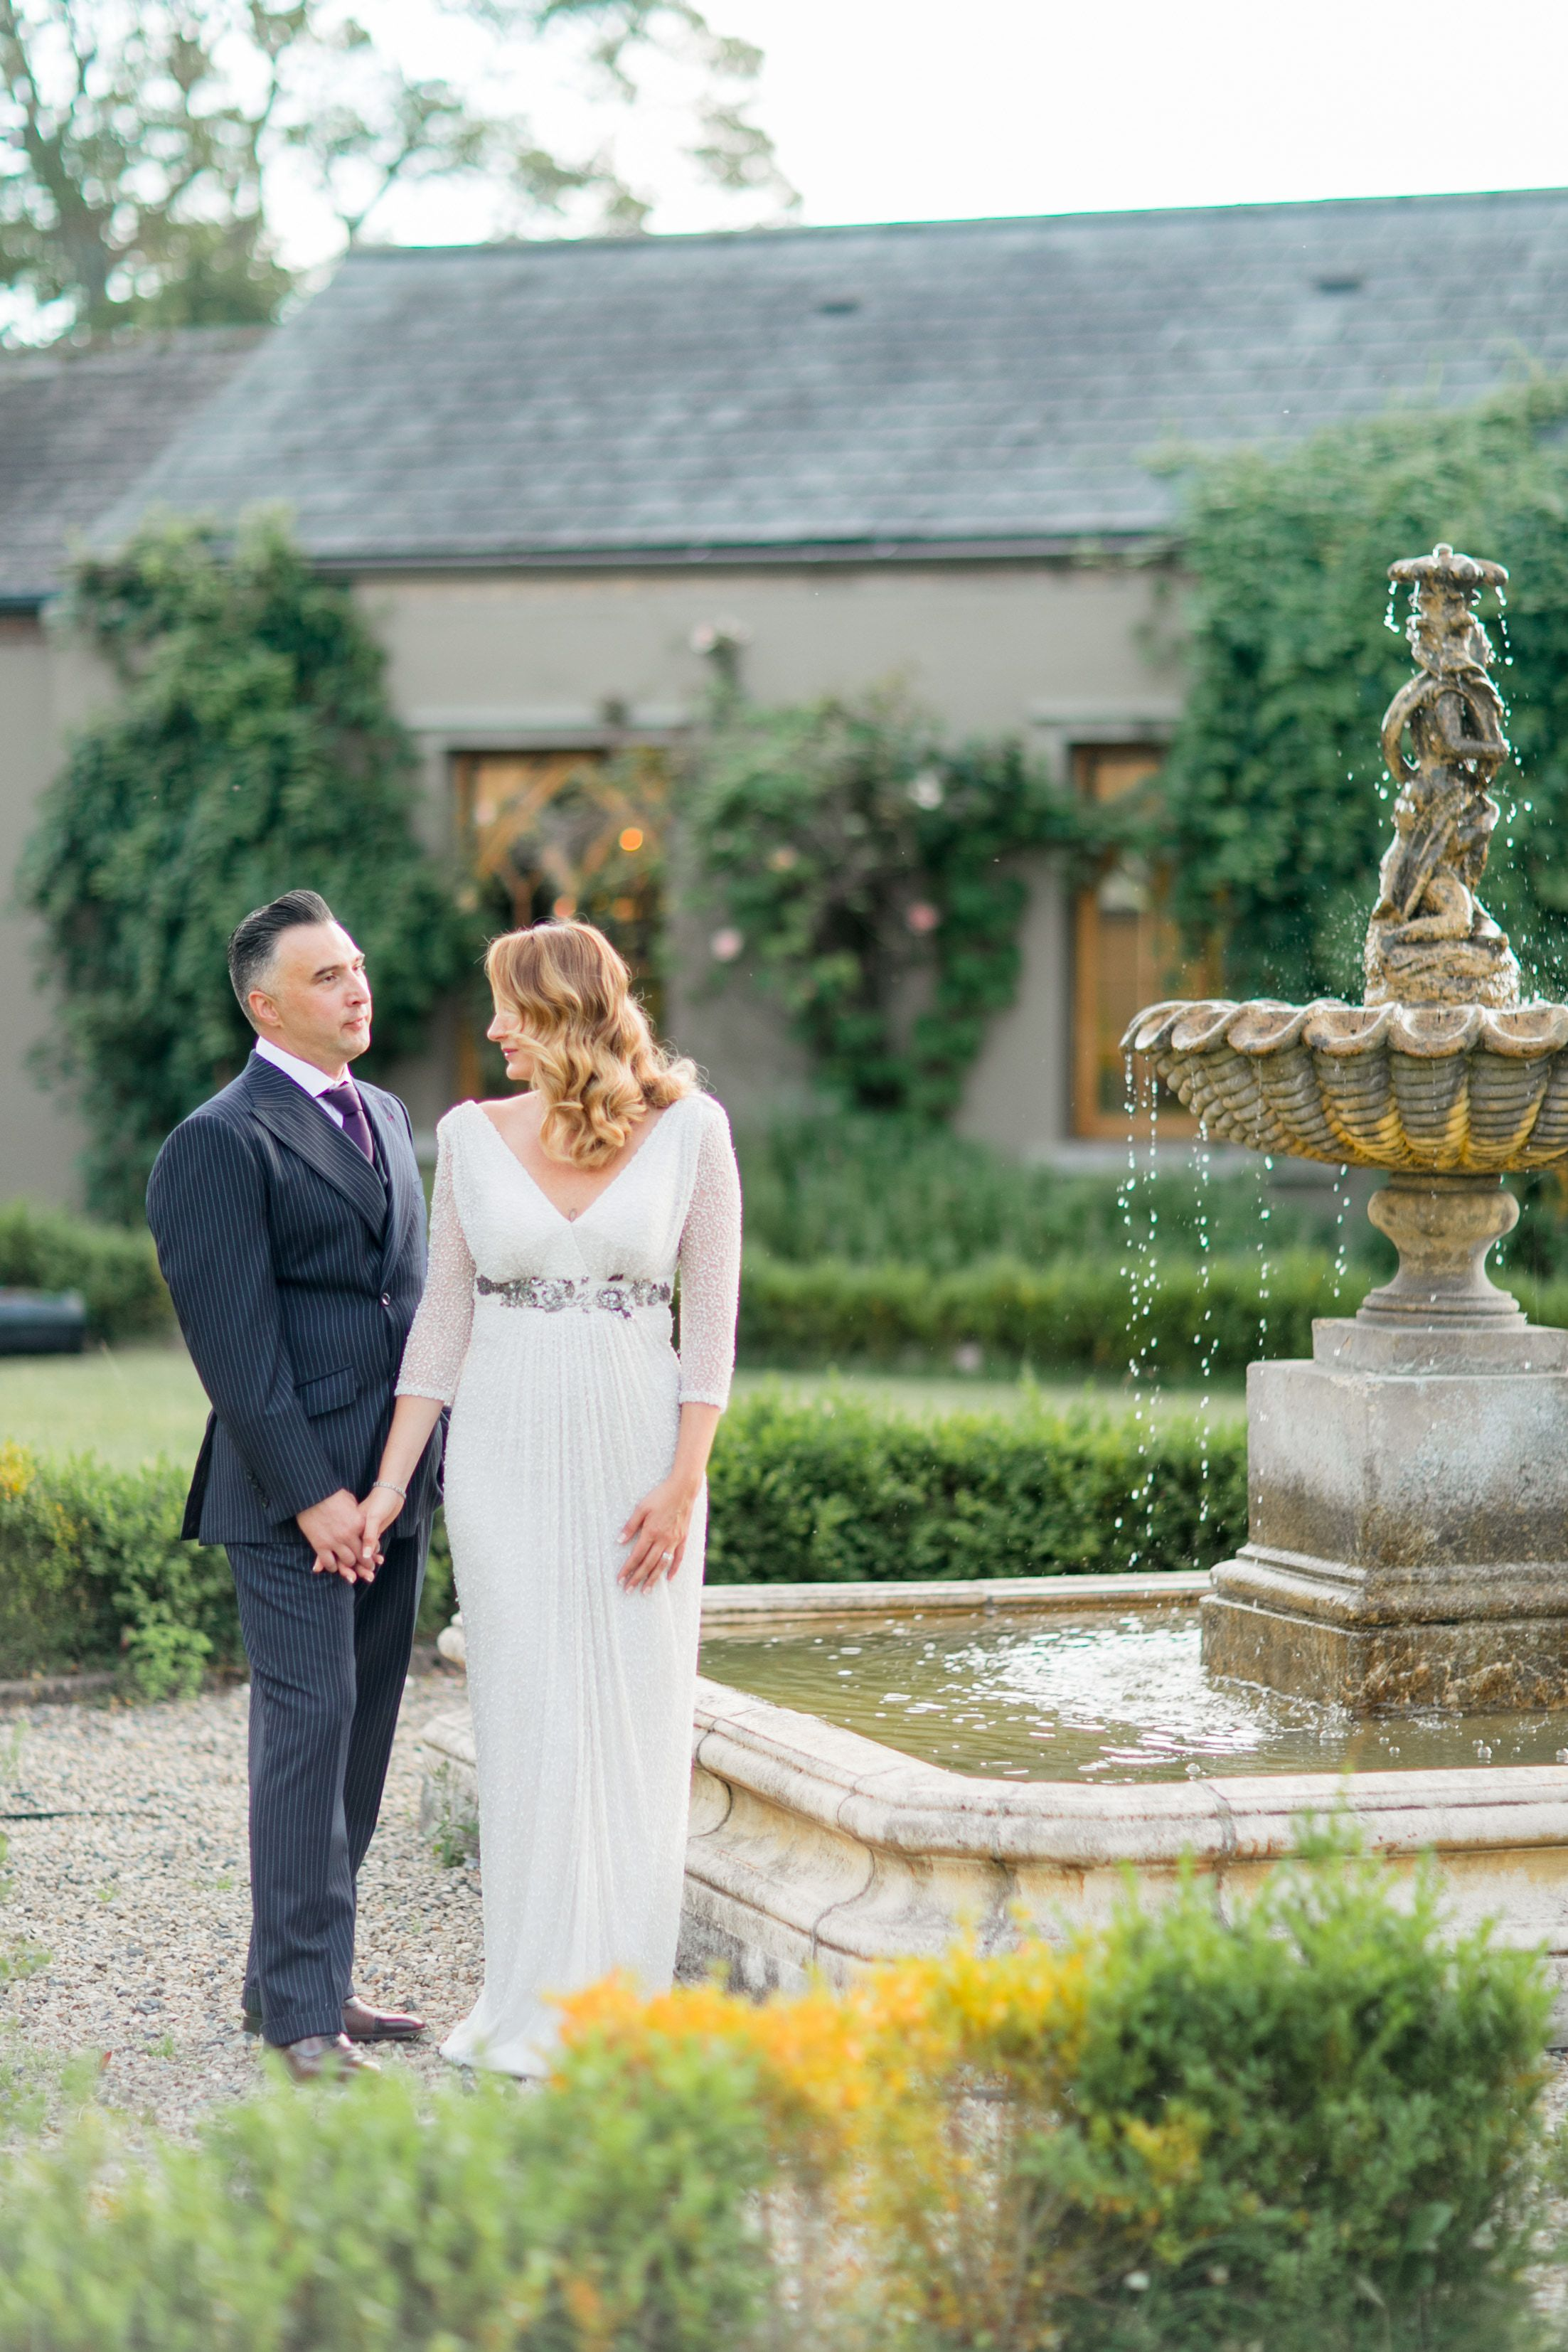 A Destination Wedding In Europe Doesn T Have To Cost A Fortune Our Carefully Designed Wedding Packages Take T Wedding Abroad Destination Wedding Gifts Wedding